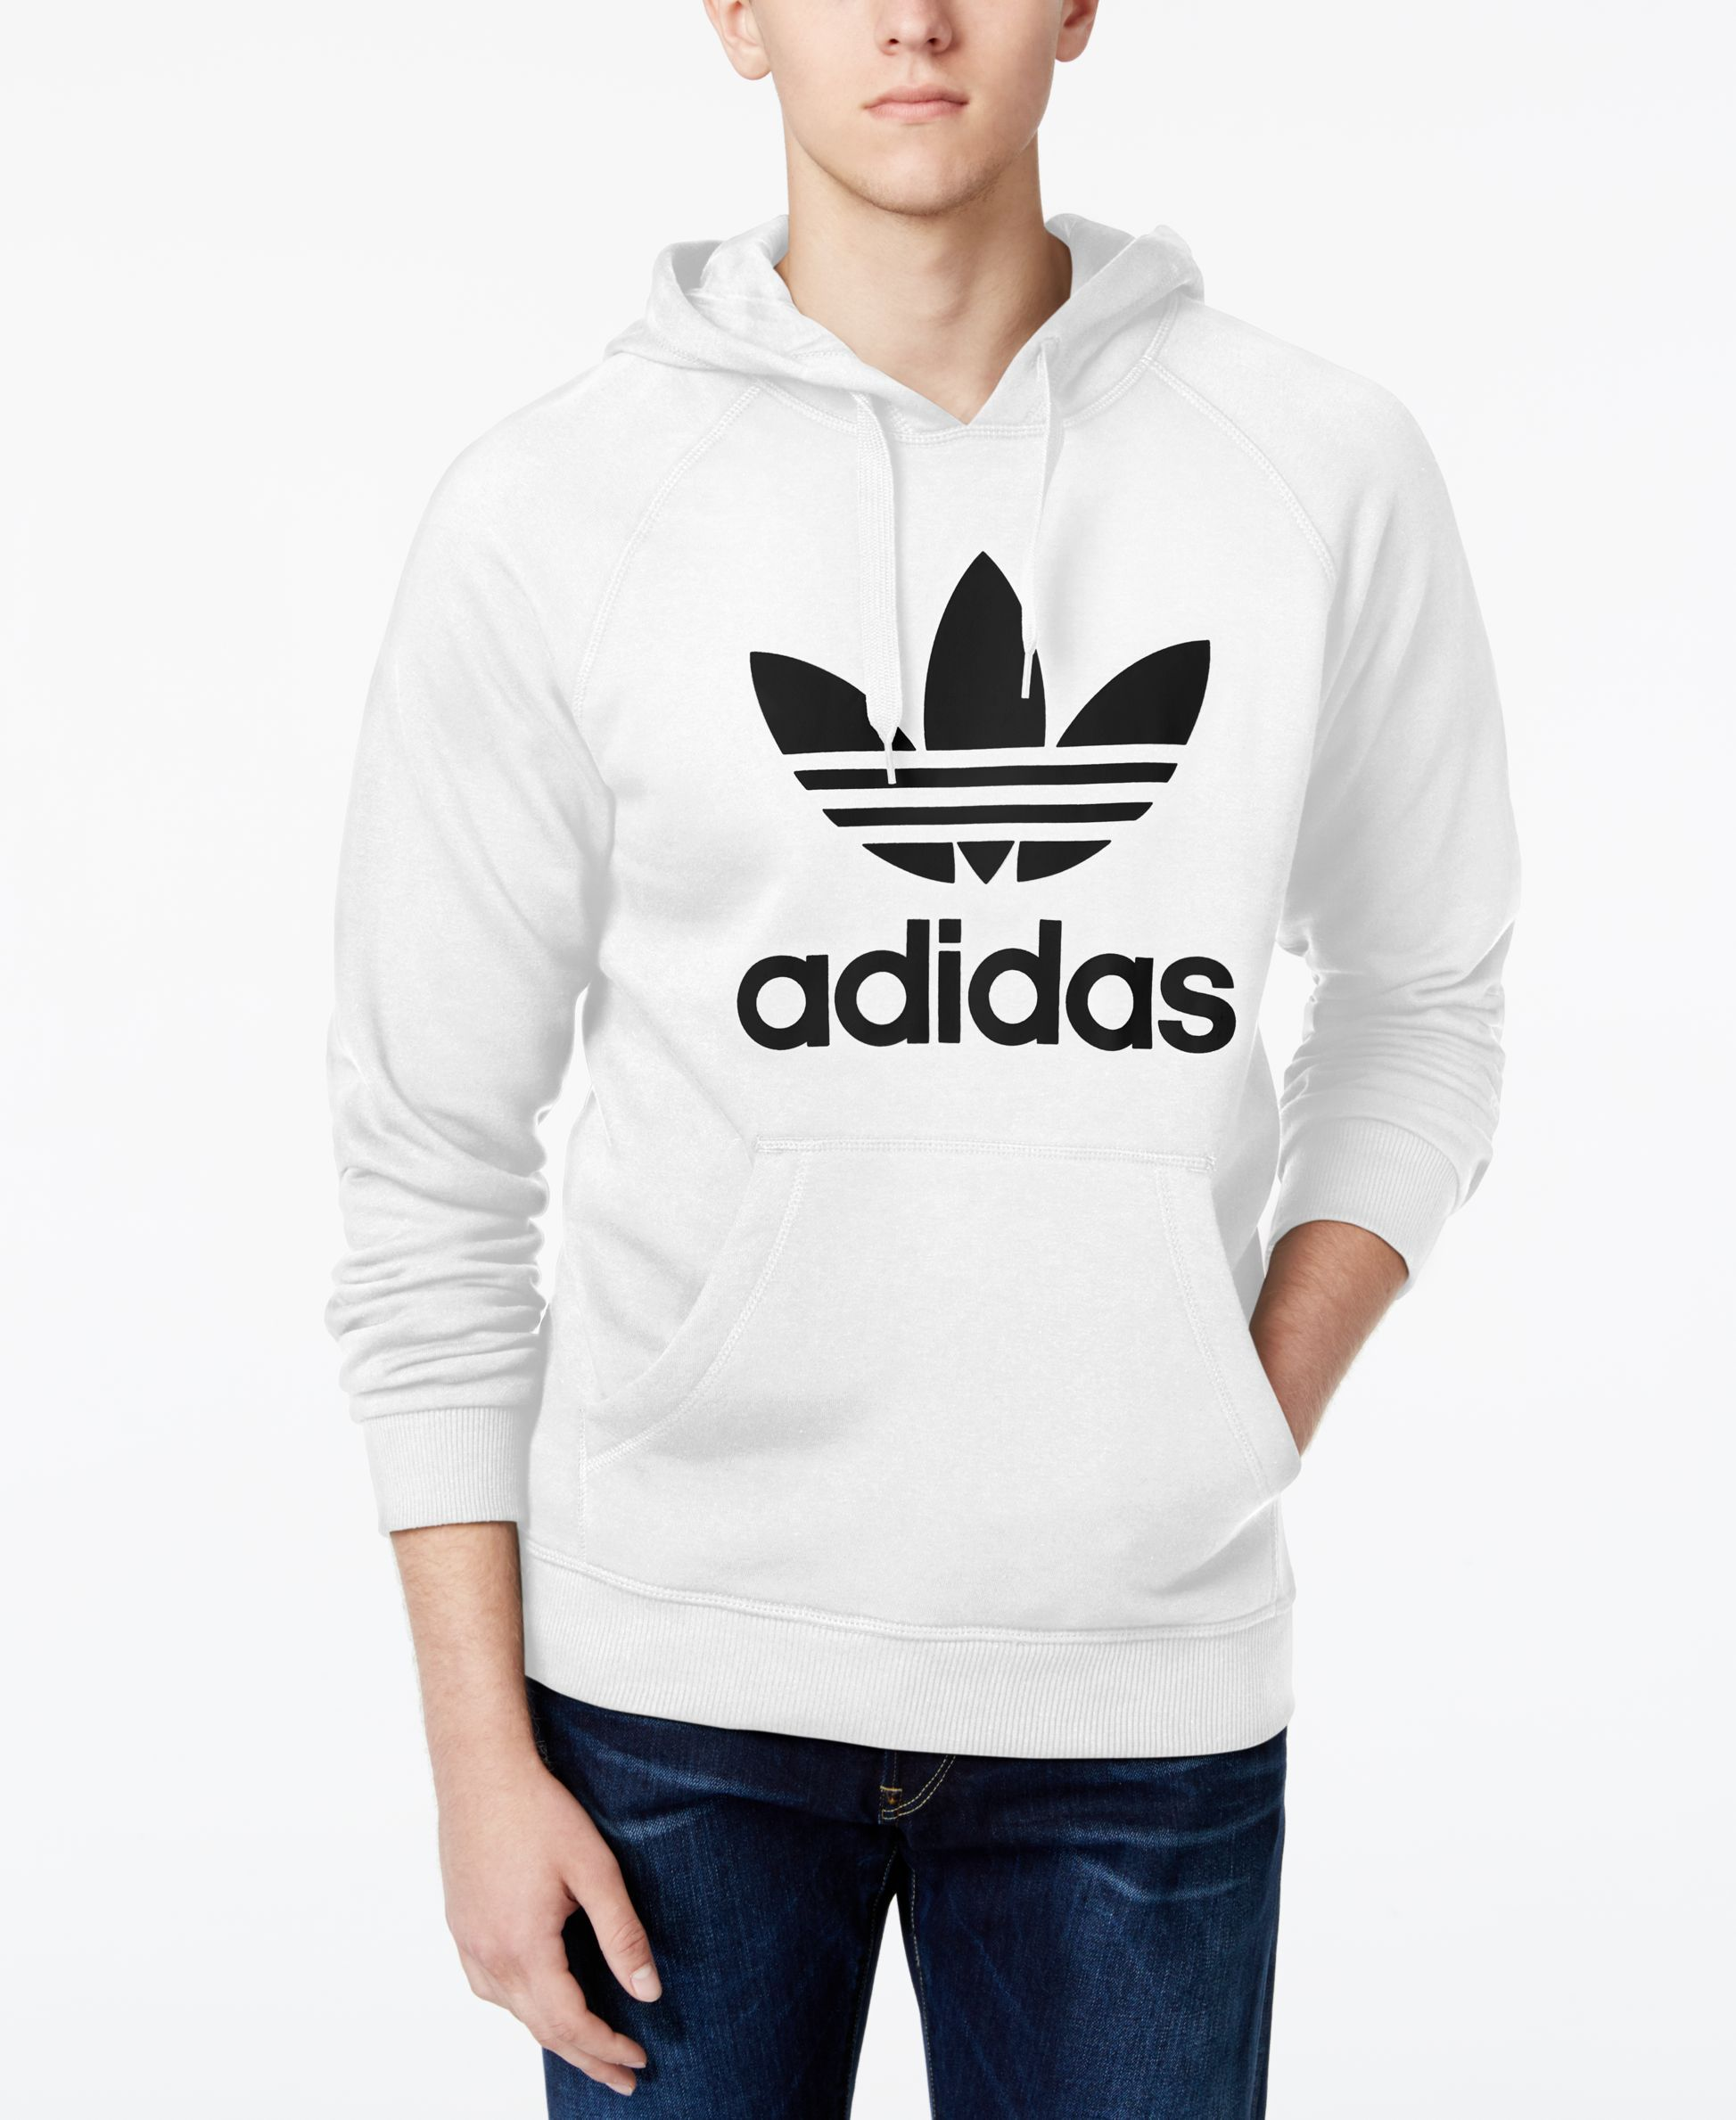 Roll with an Old School look with this simple hoodie from adidas Originals,  featuring the iconic logo at the front.